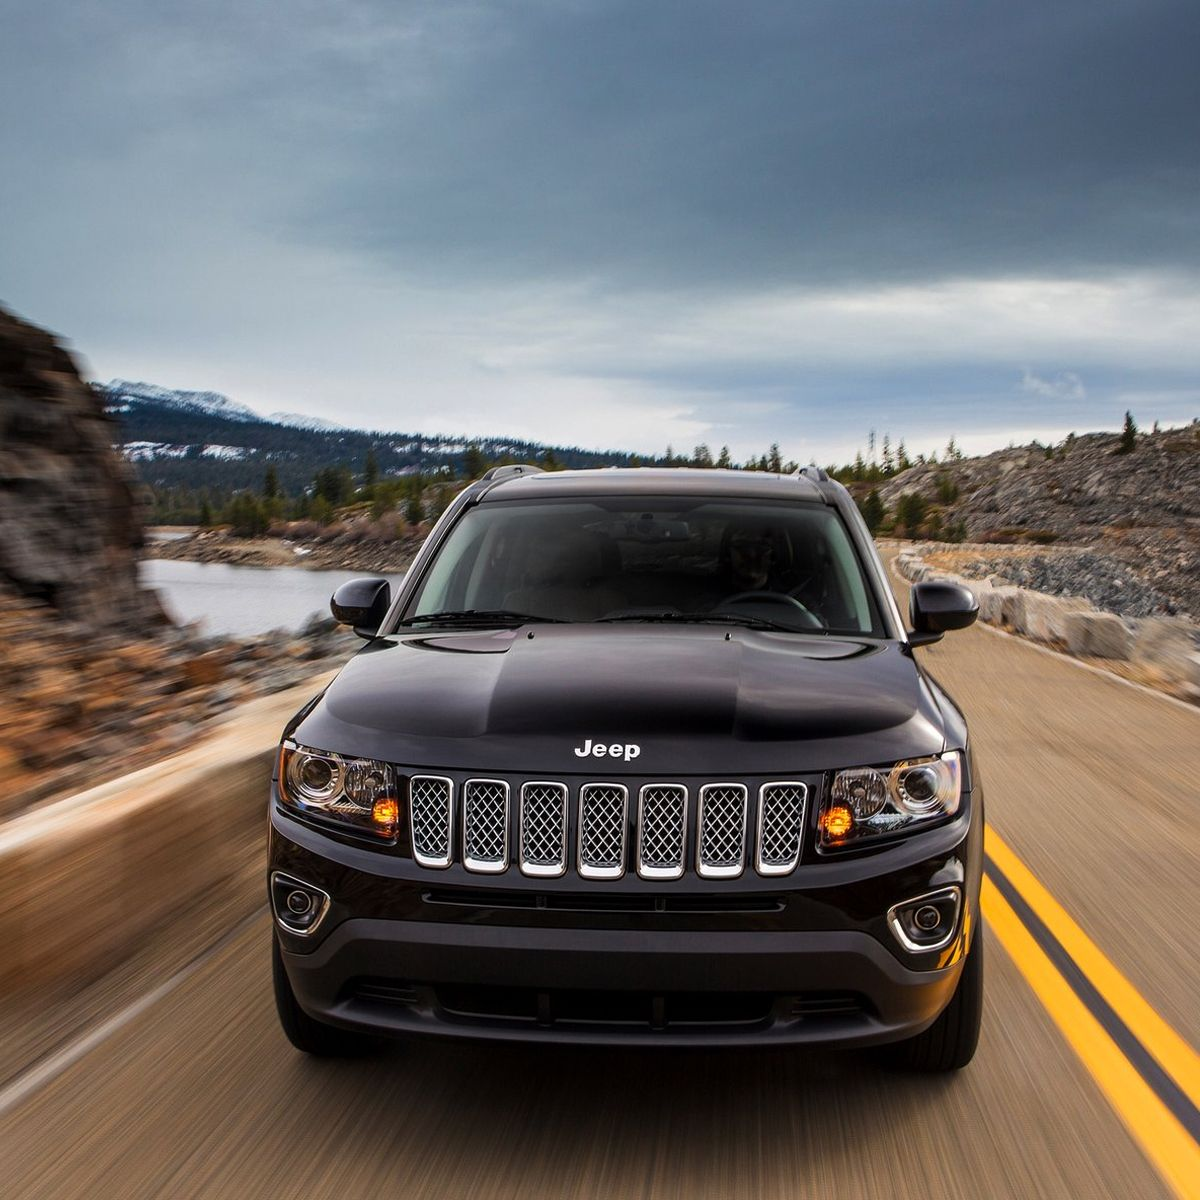 Jeep Compass Jeep Compass Jeep Chrysler Dodge Jeep